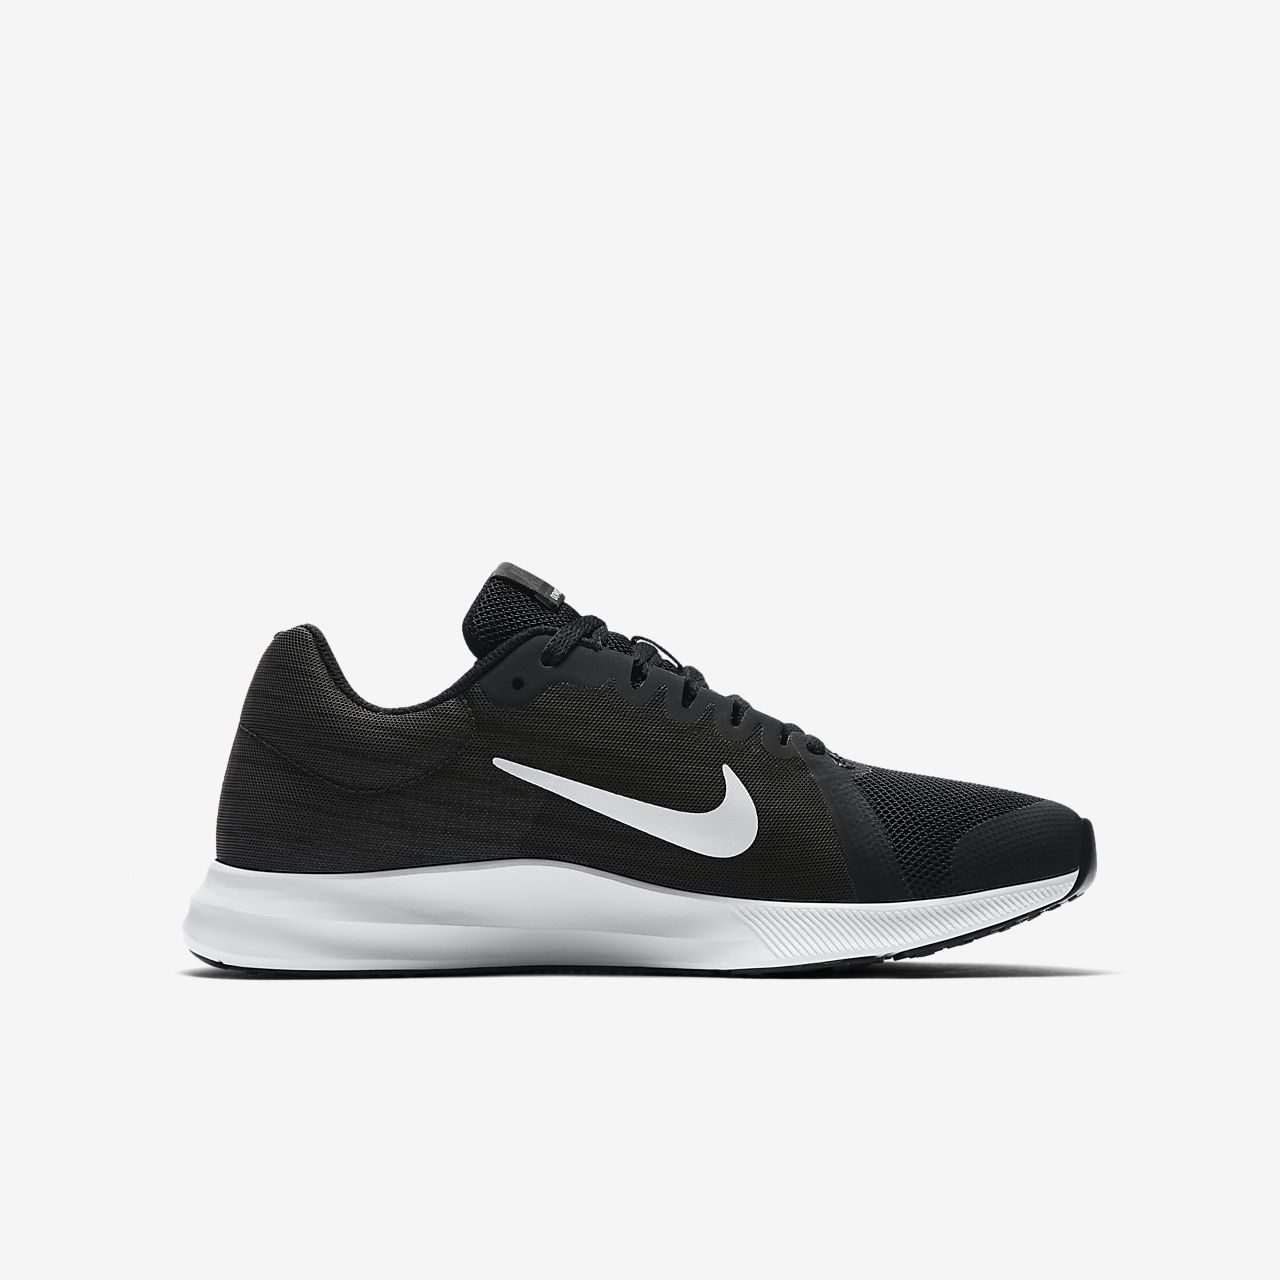 Chaussures Nike Downshifter noires Casual garçon Khwlwb3I